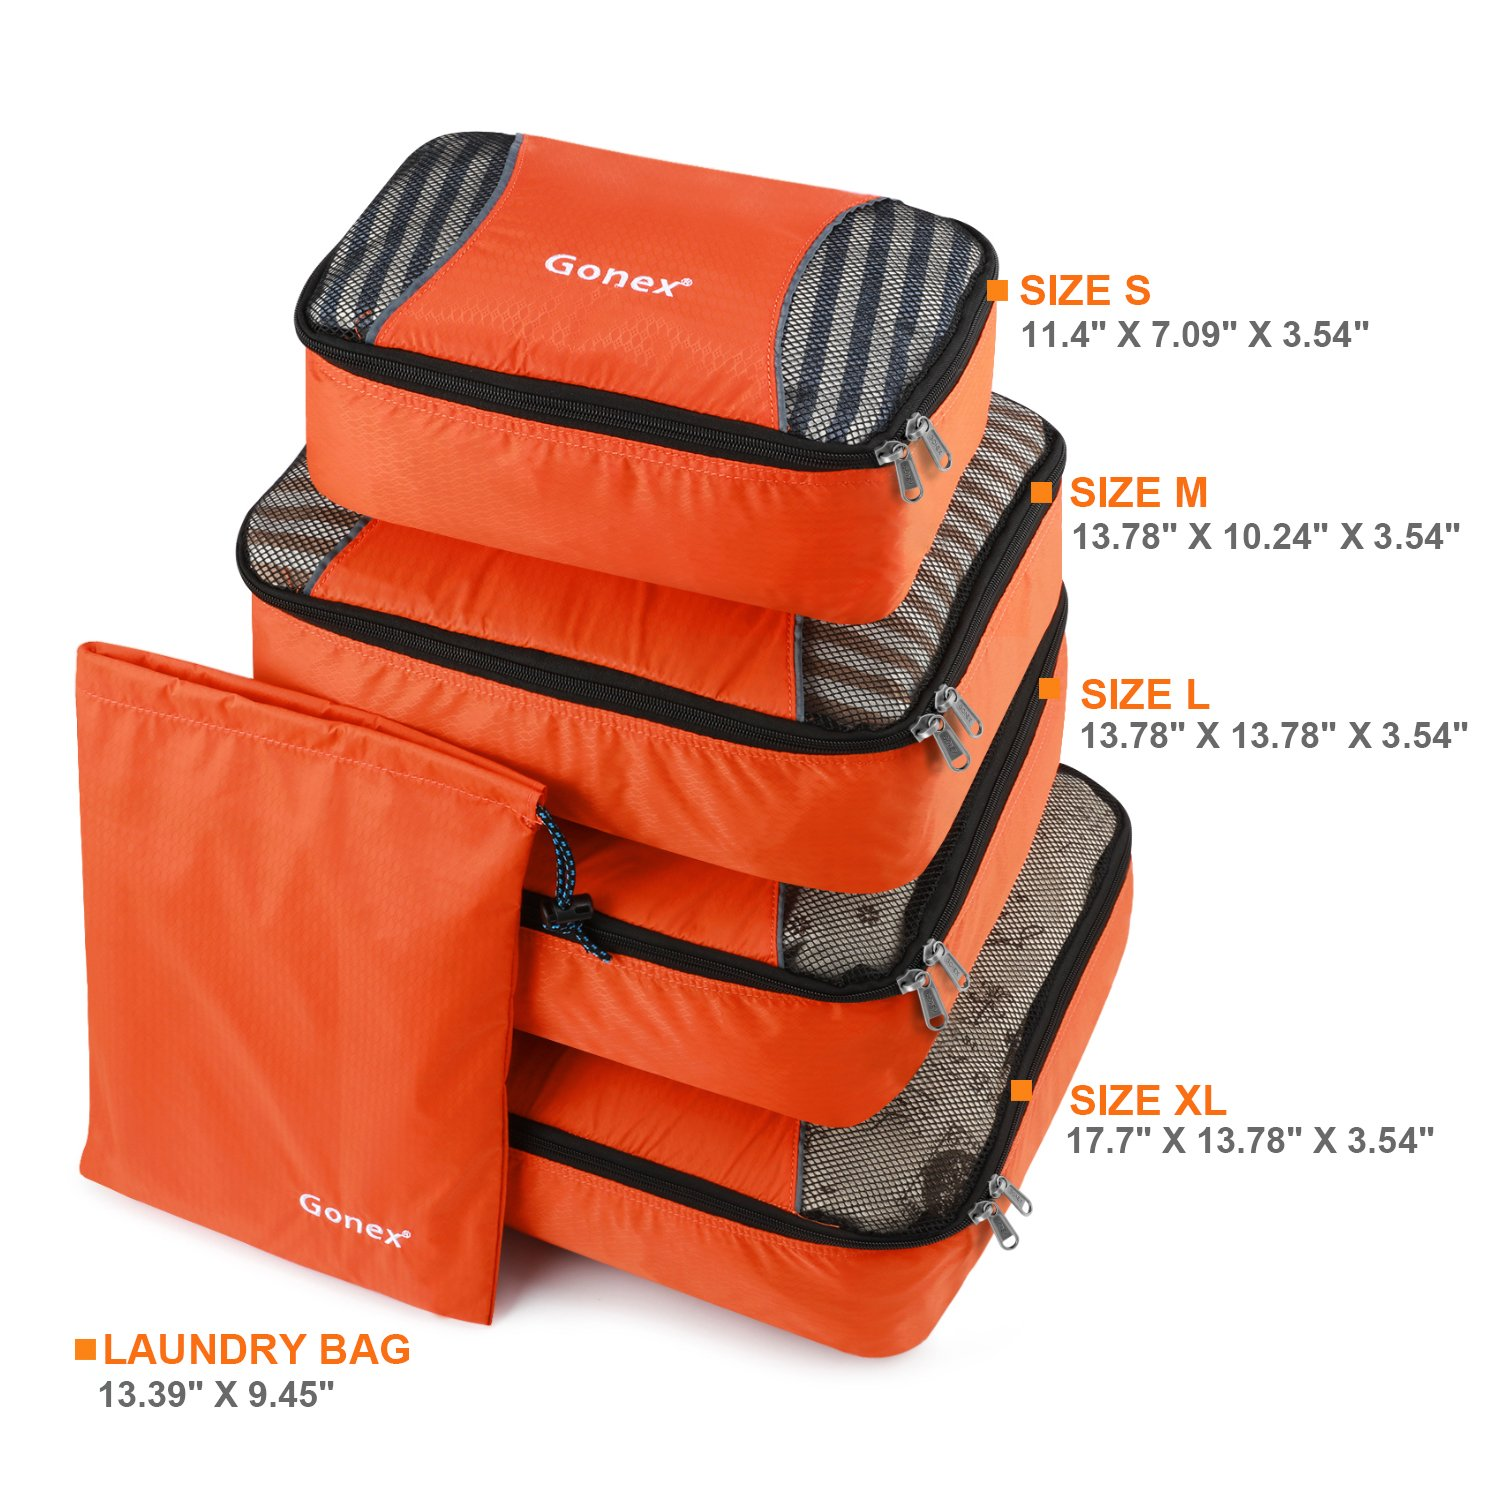 a5bef26f4955 Gonex Packing Cubes Travel Luggage Organizer with Shoe Bag (Deep ...